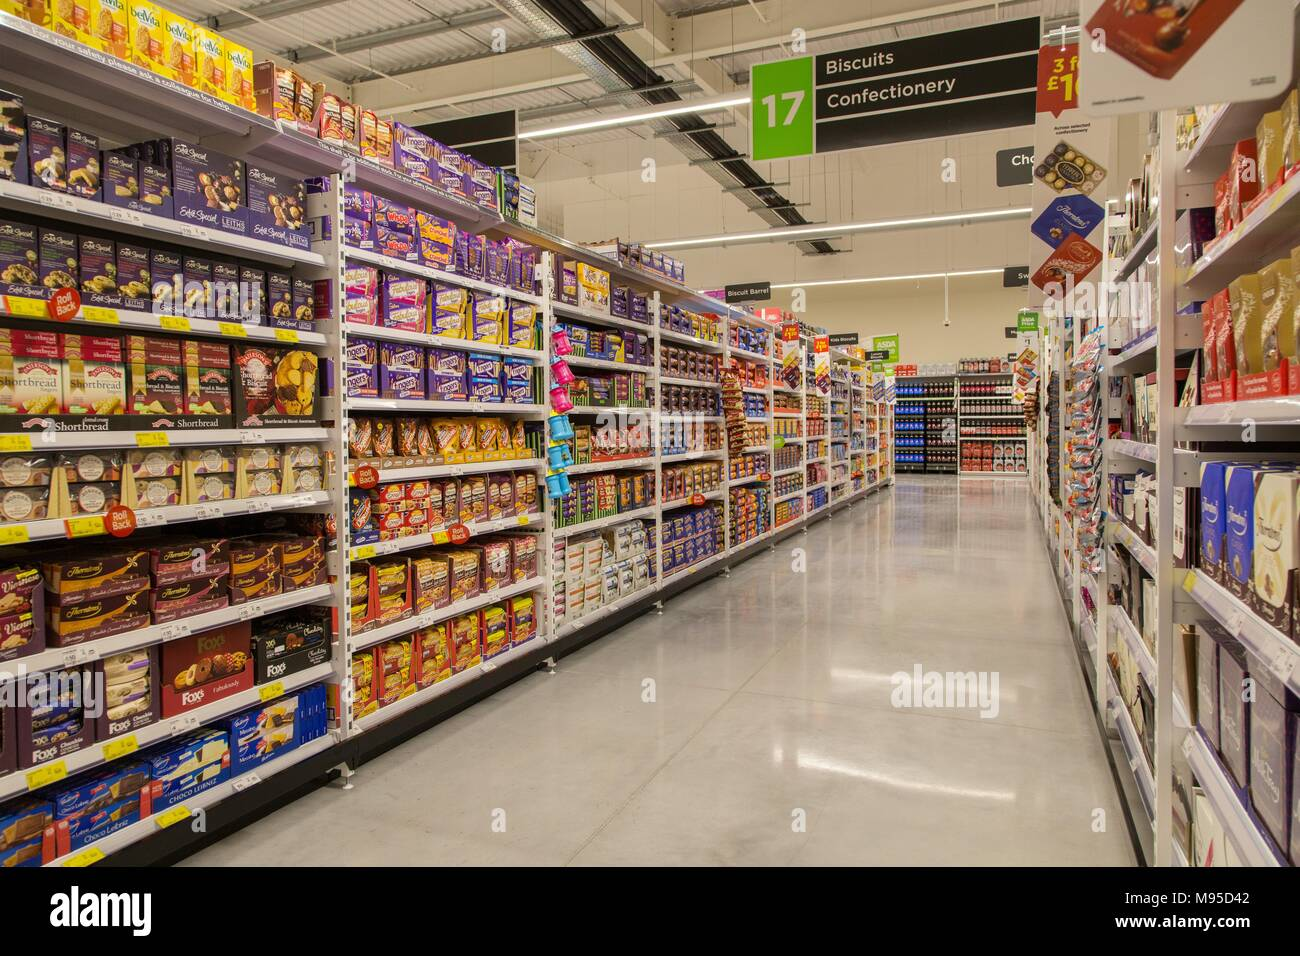 Biscuits And Confectionery On Full Shelves In An Asda Supermarket